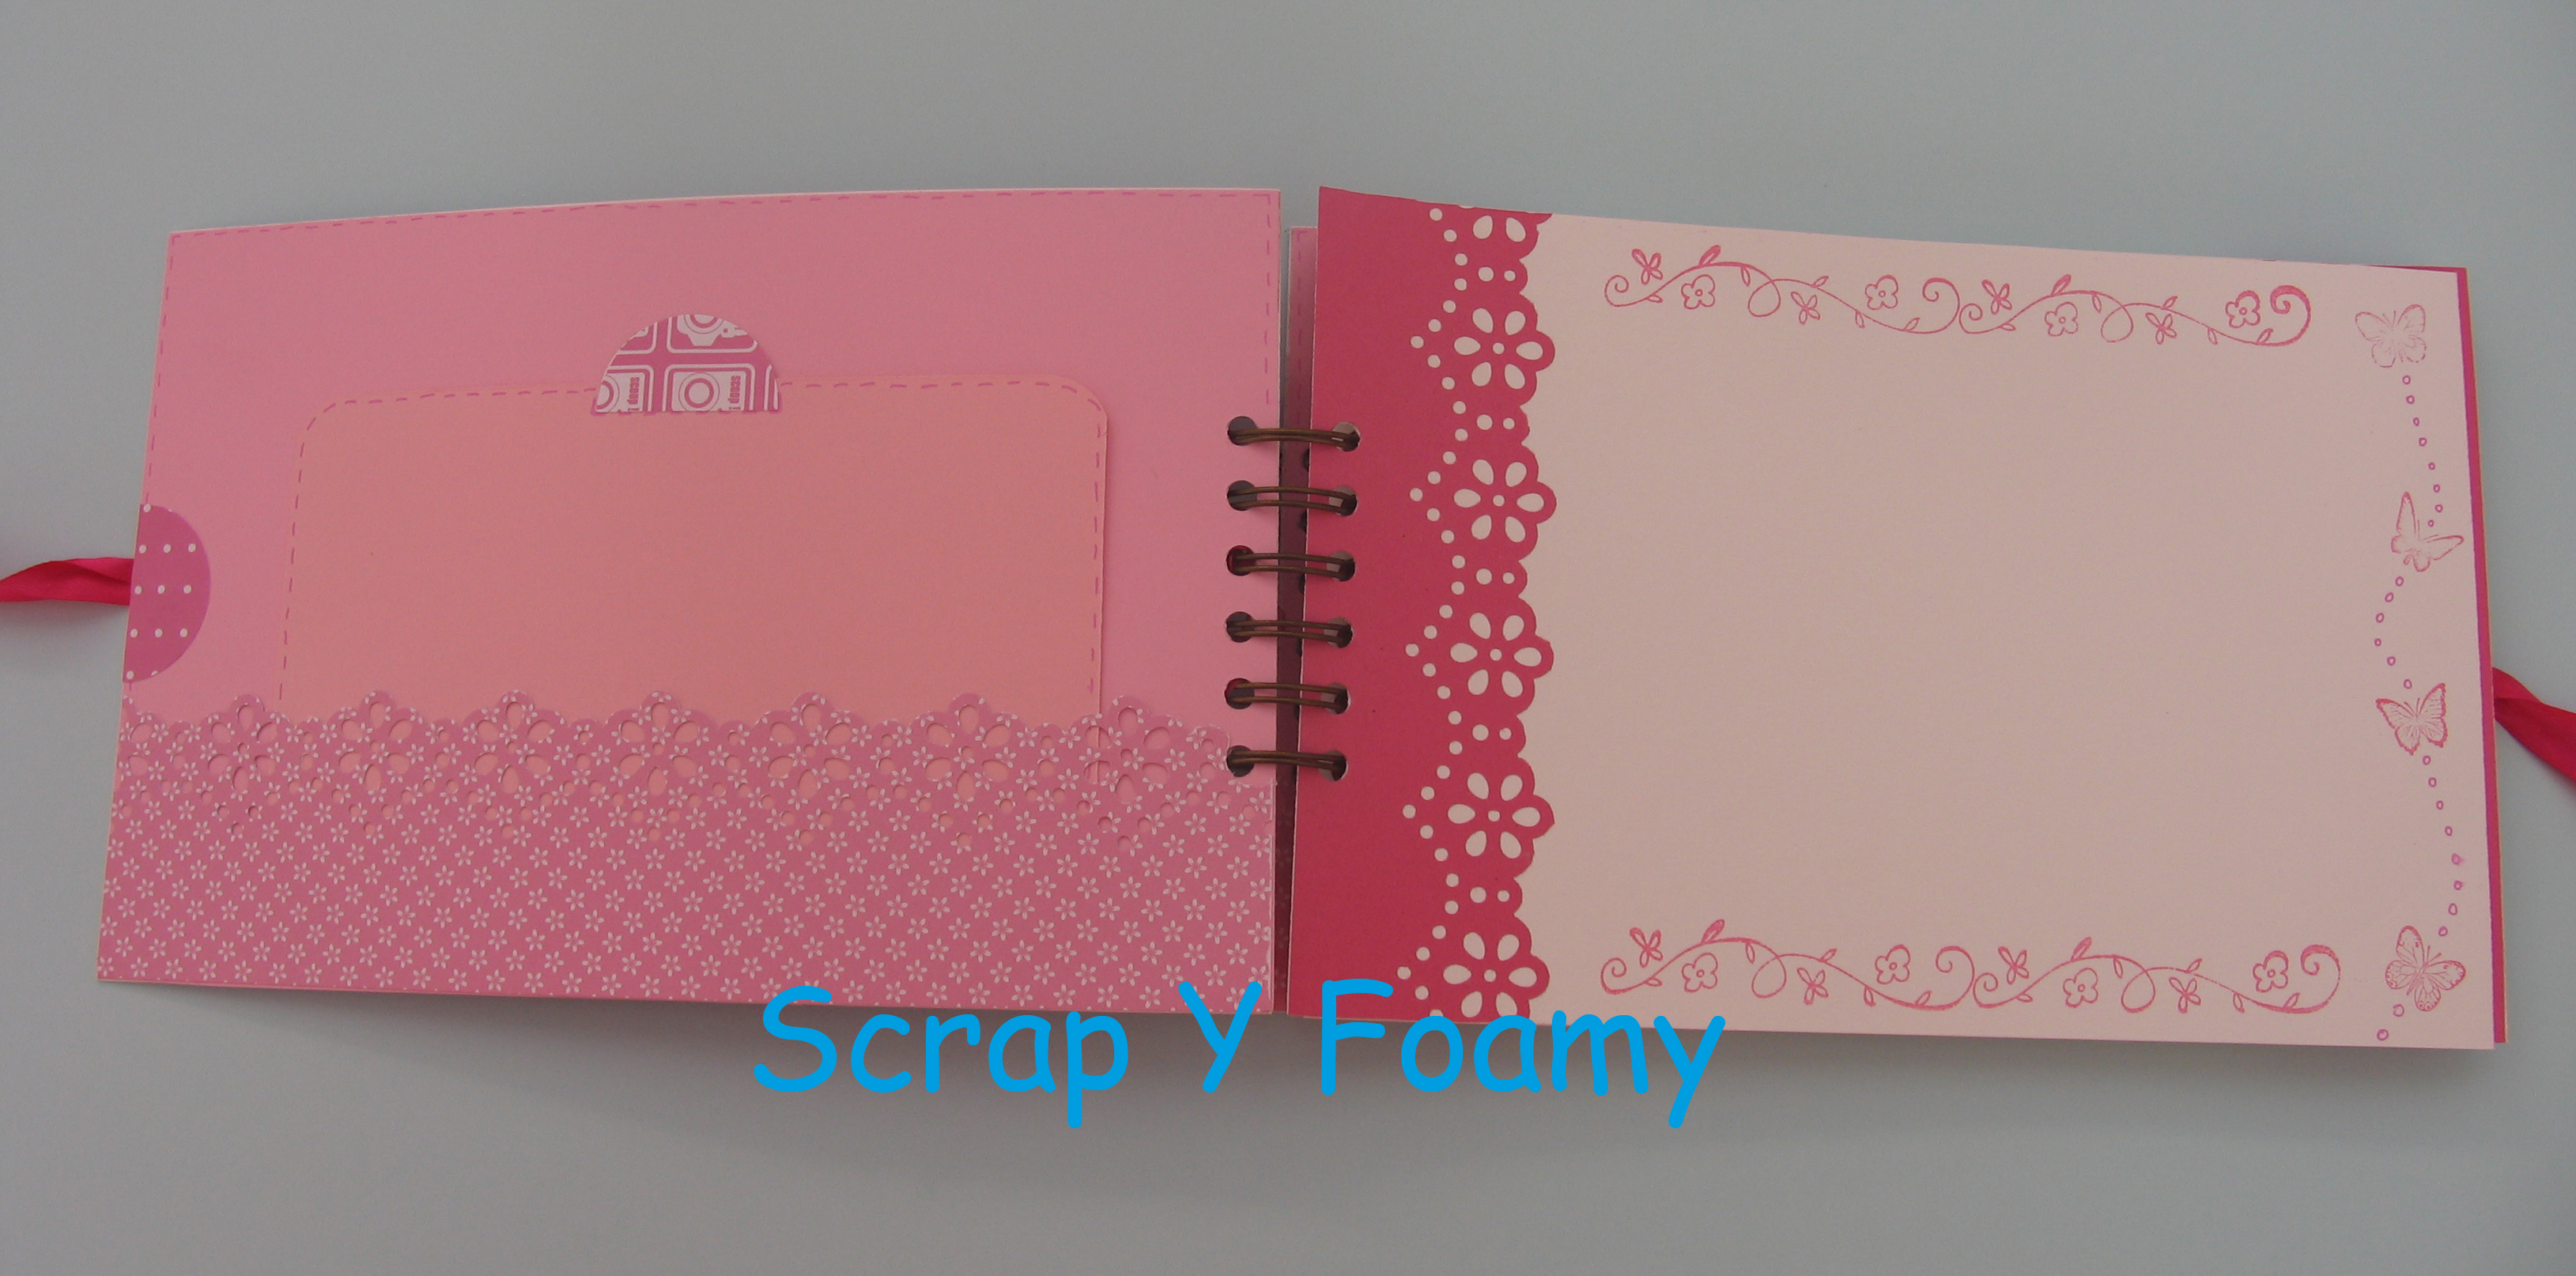 mayo  2012  Scrap Y Foamy